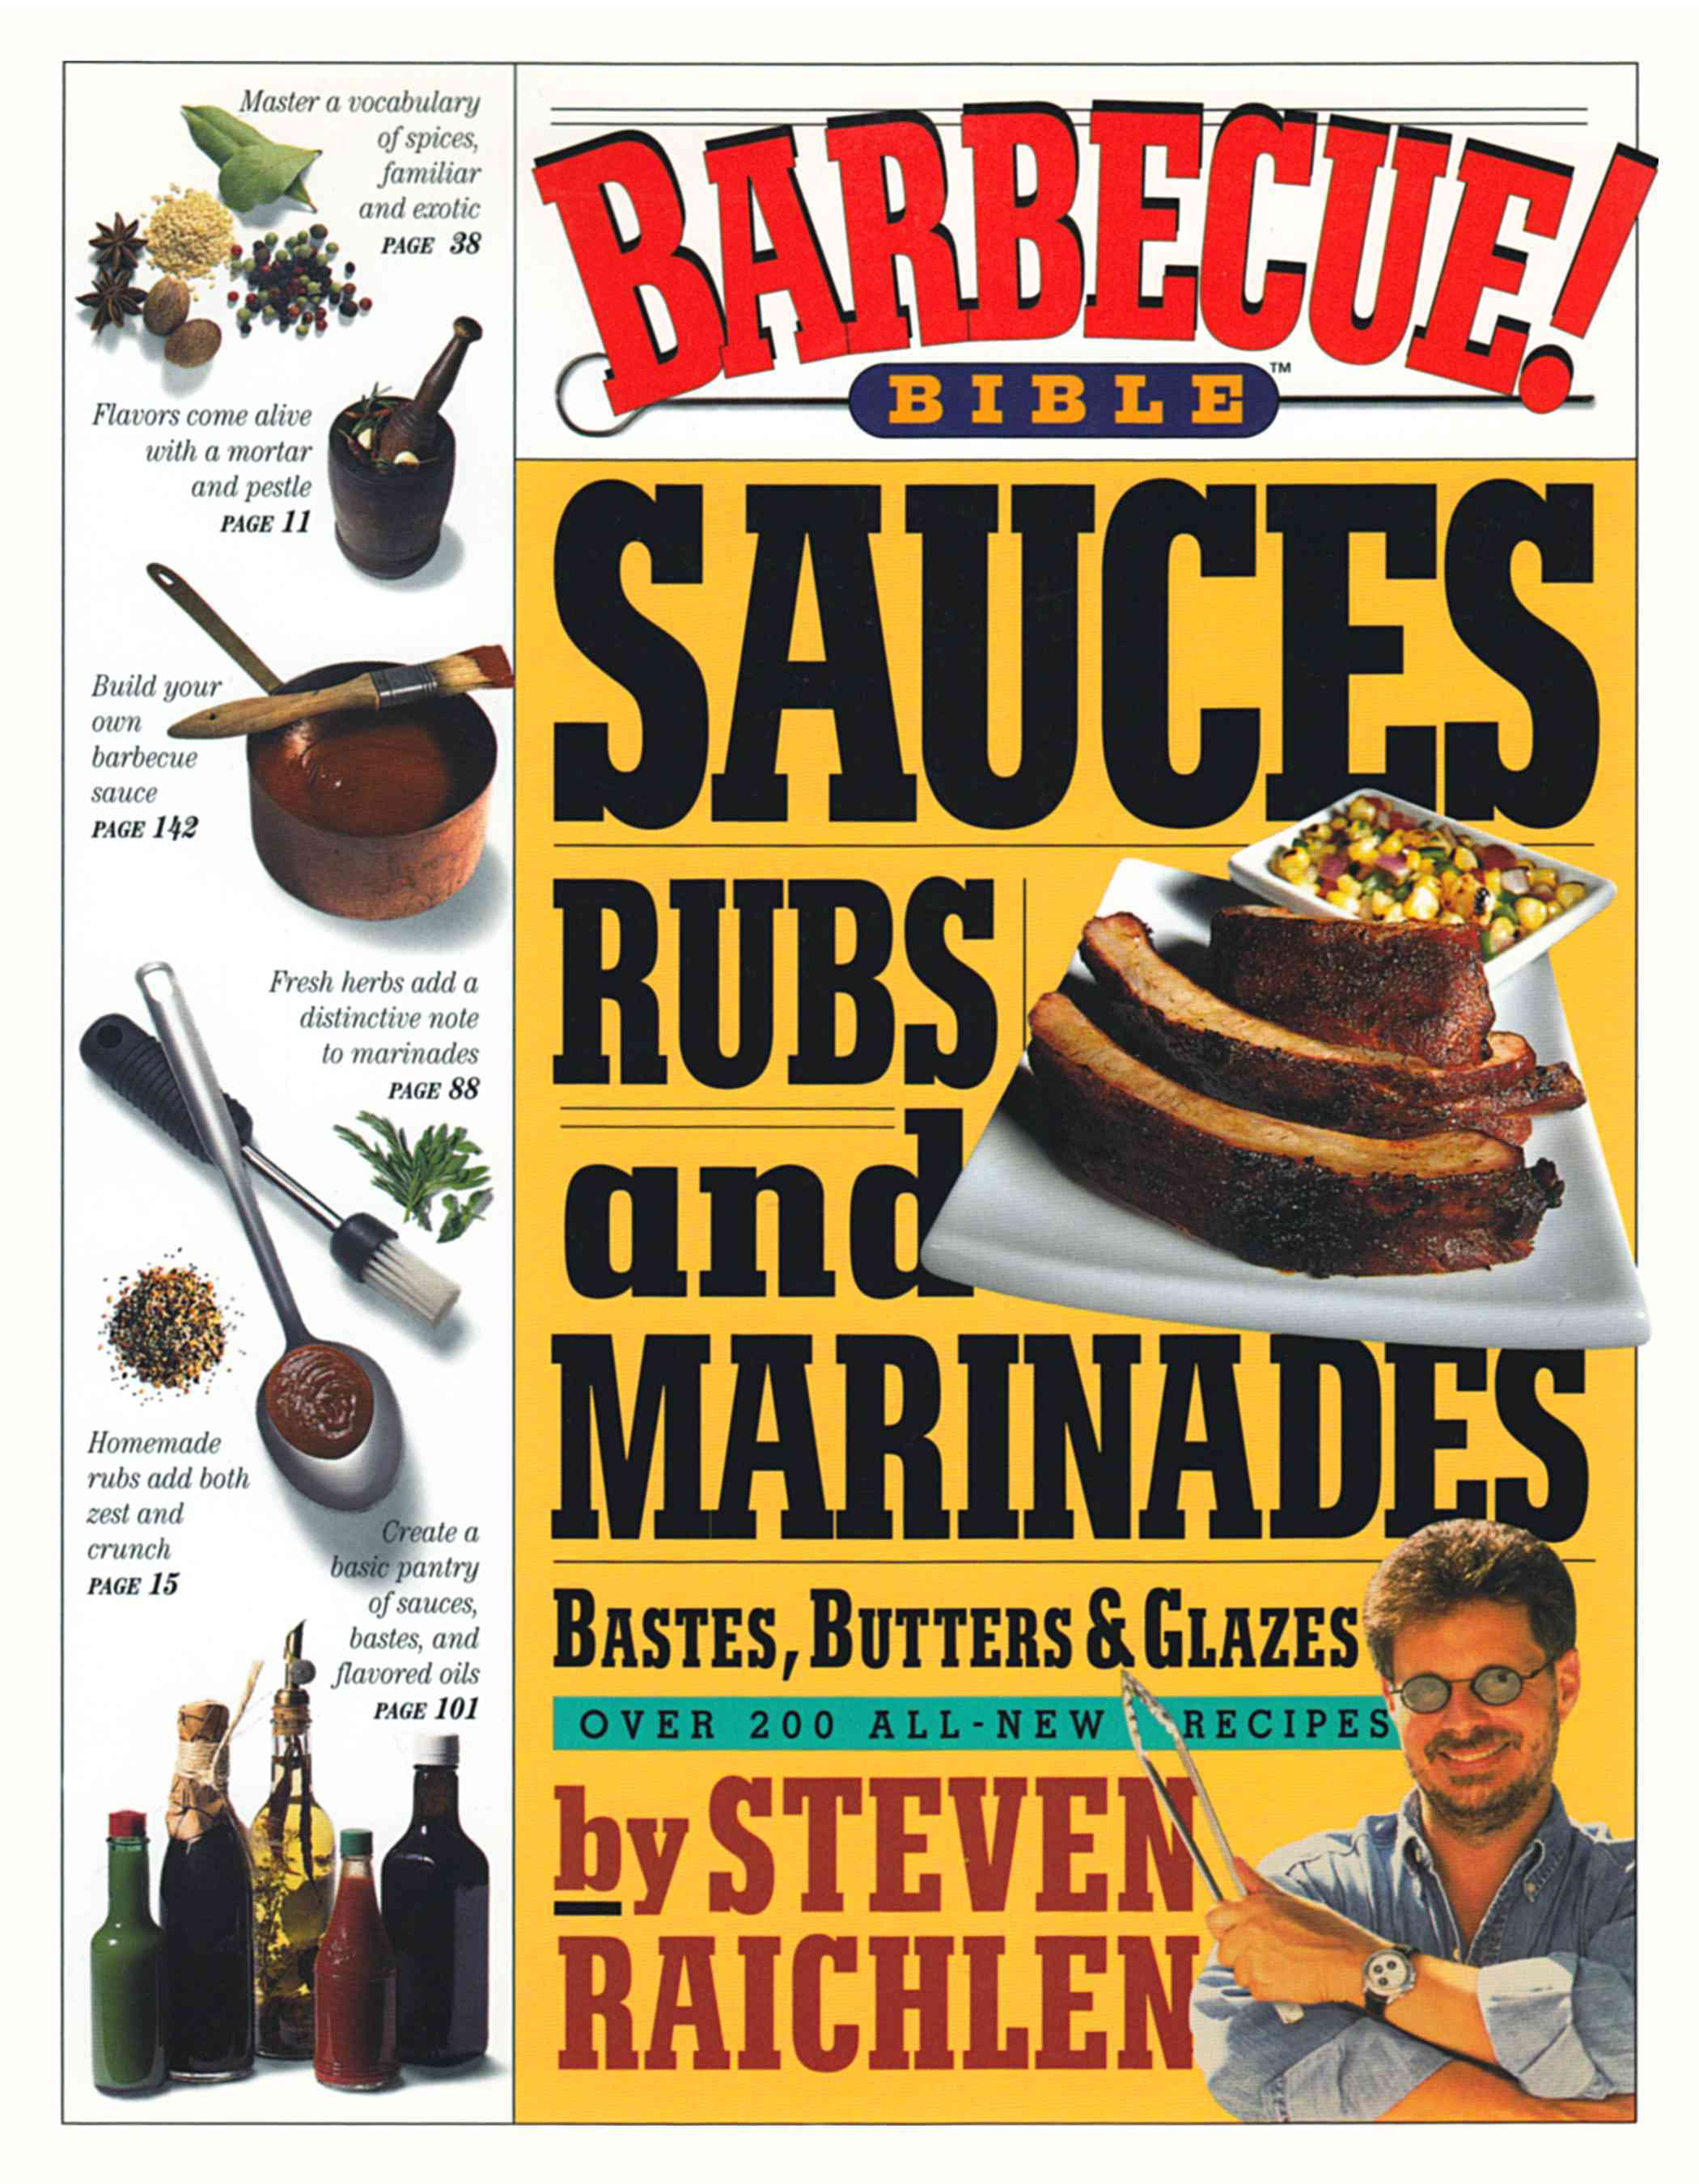 Barbecue! Bible Sauces, Rubs, and Marinades, Bastes, Butters, and Glazes (Paperback) - Thumbnail 0